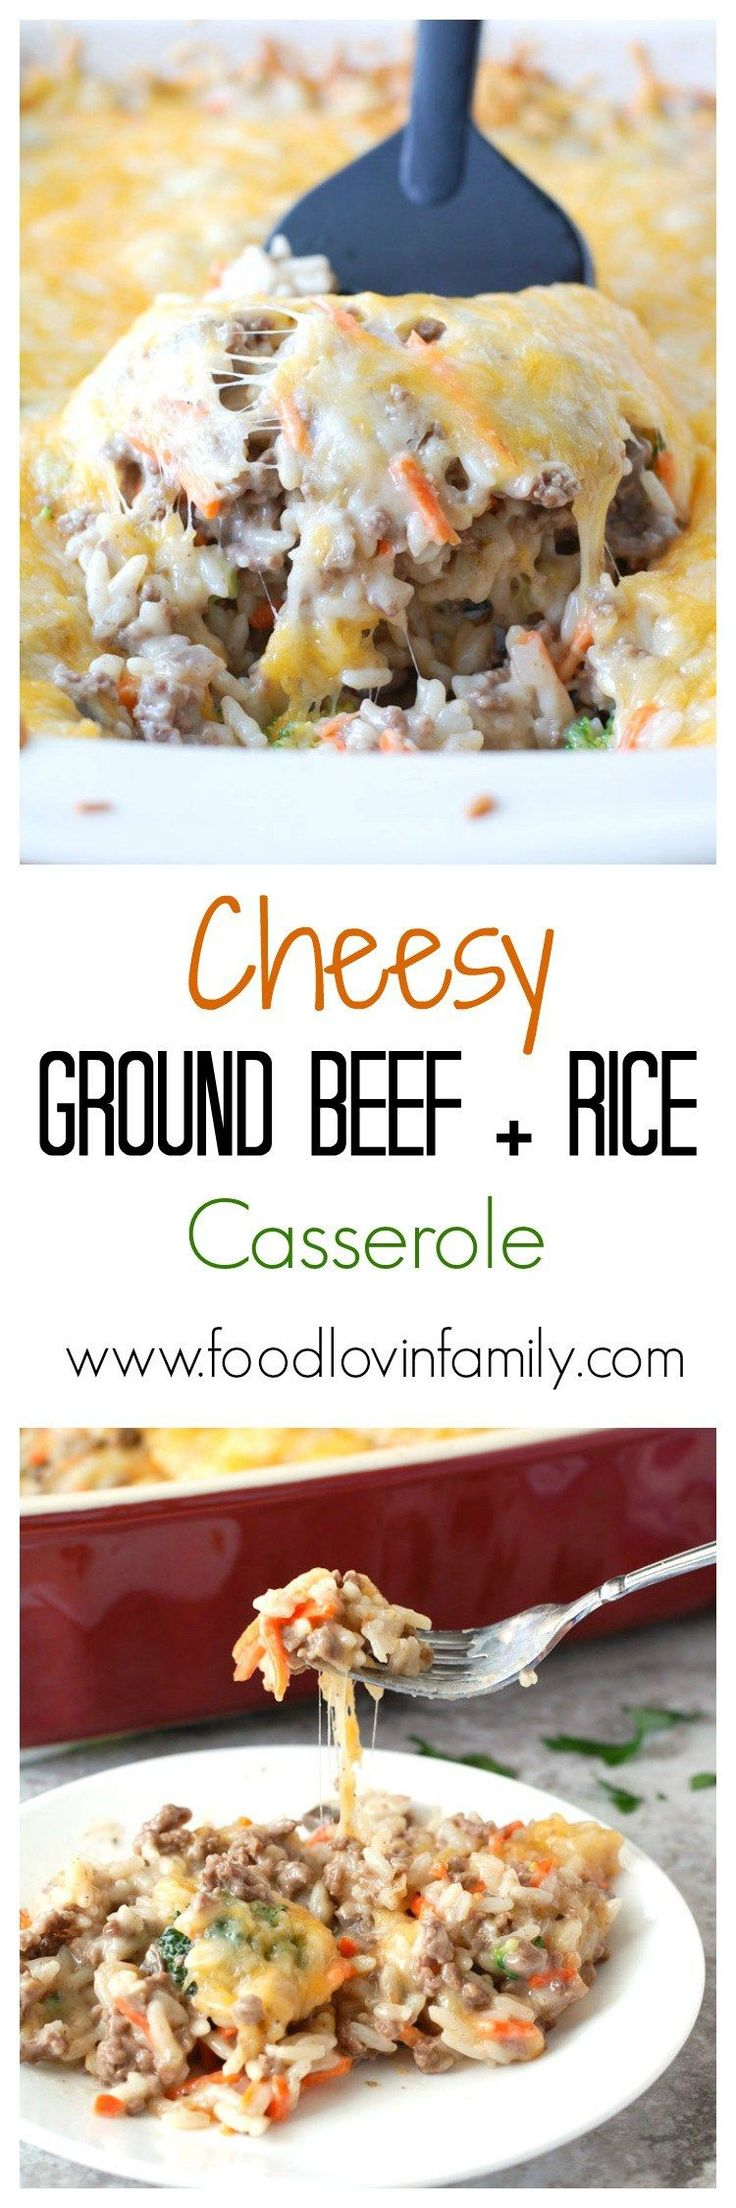 Cheesey hamburger and rice casserole